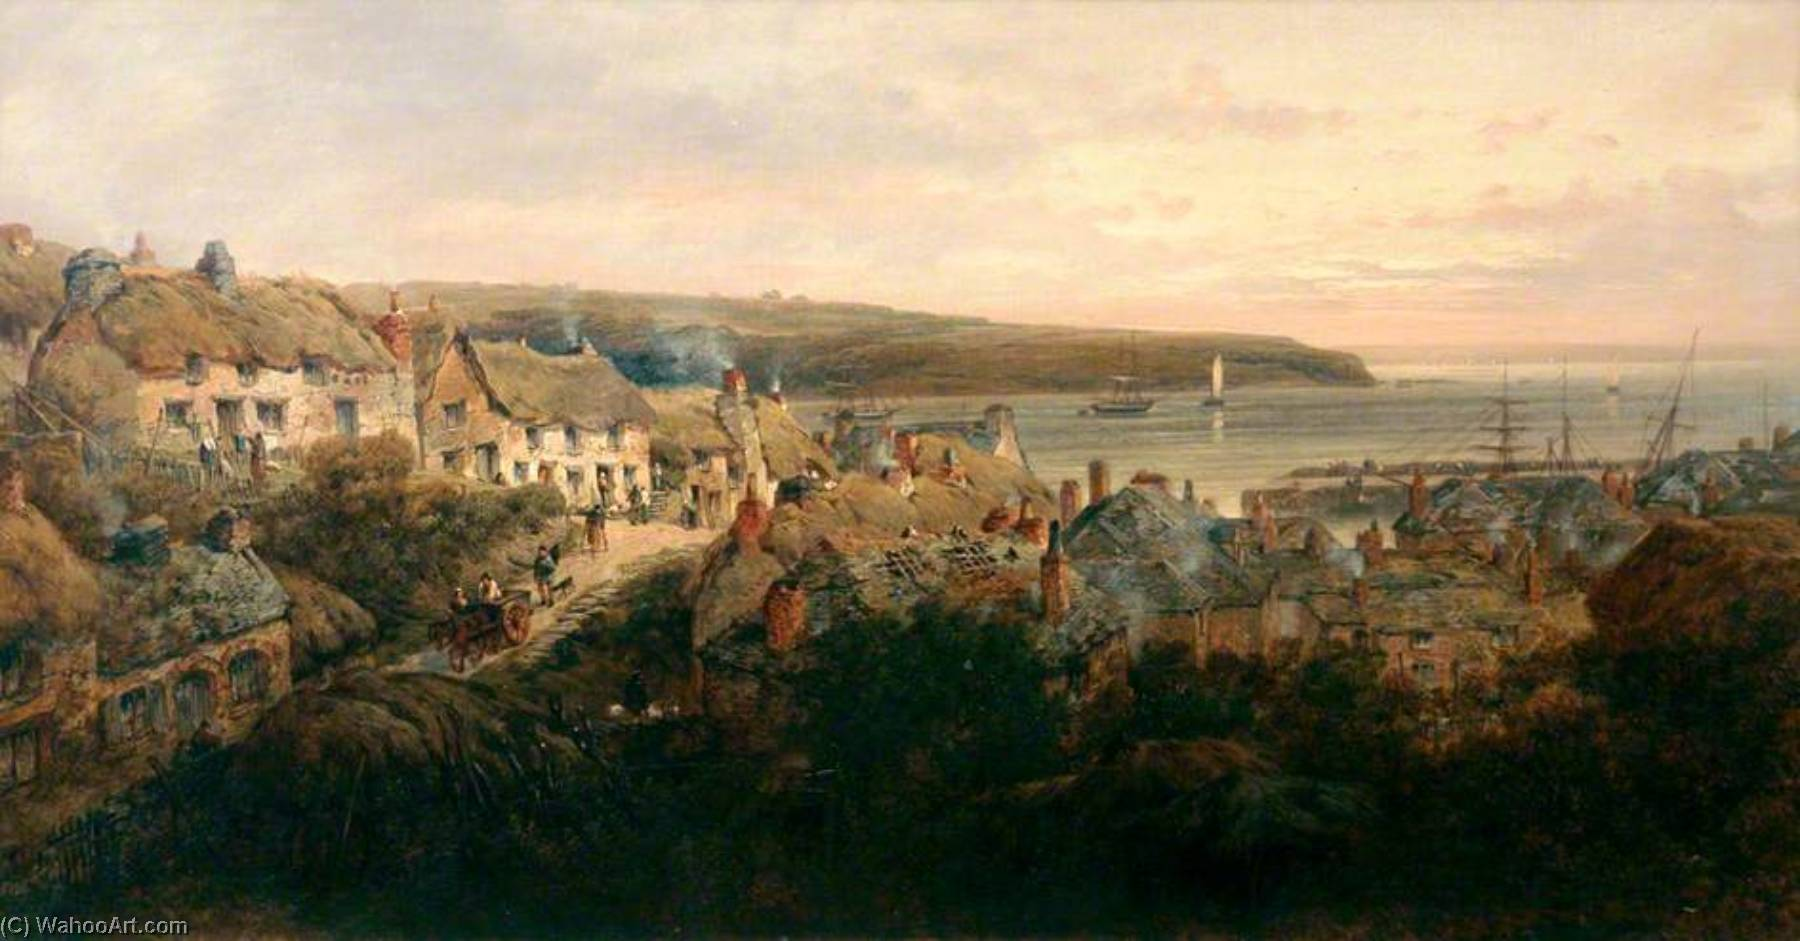 St Mawes, Cornwall, 1872 by William Pitt | Art Reproduction | WahooArt.com